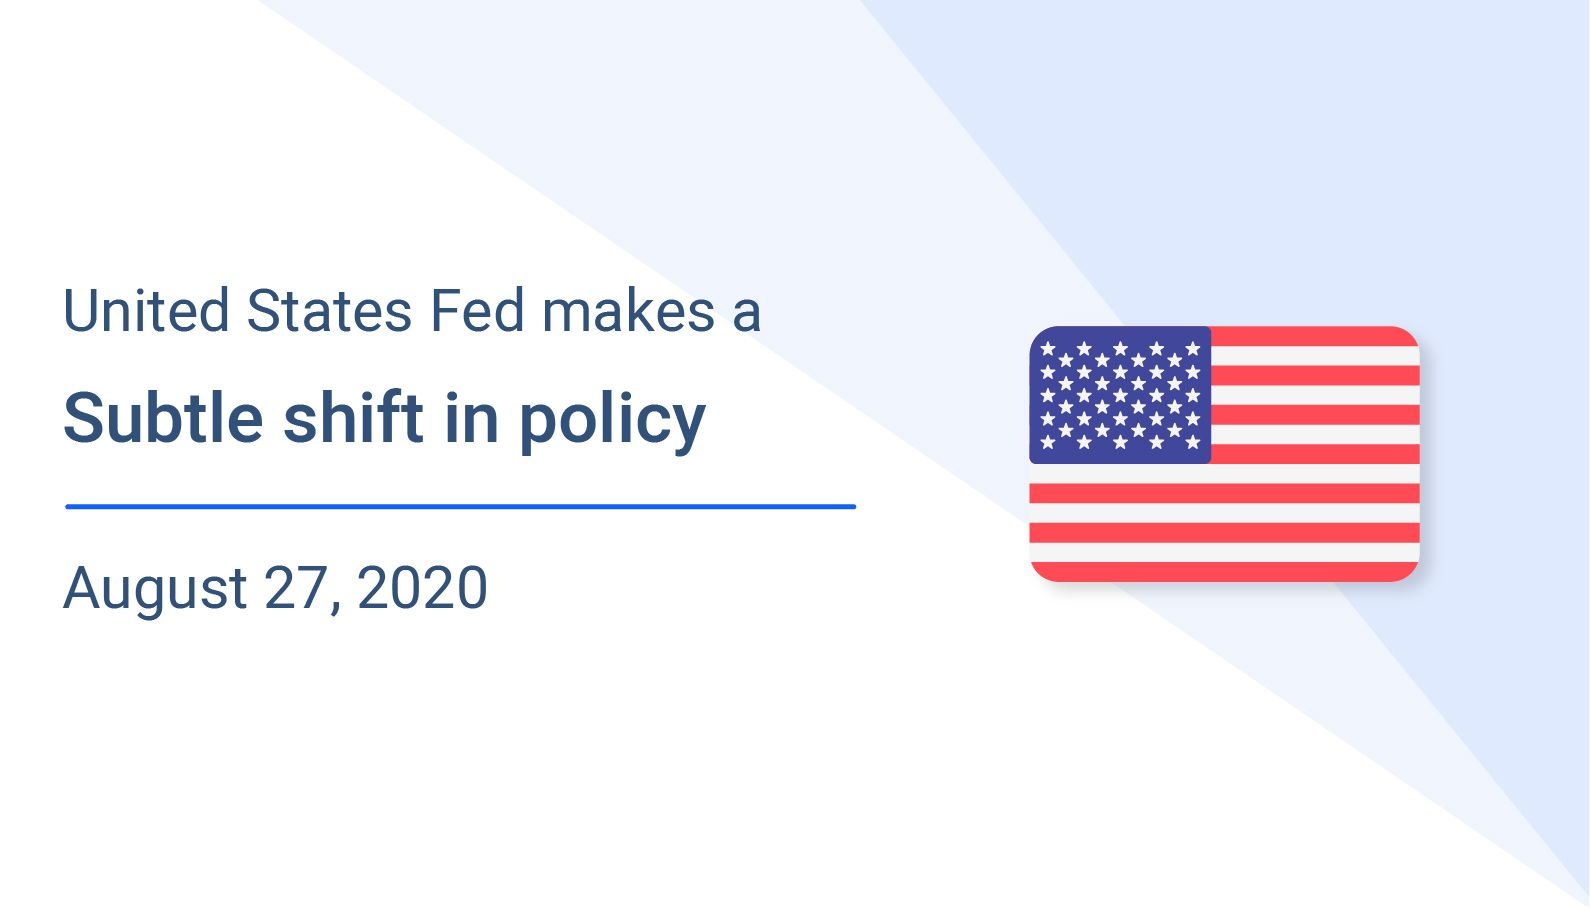 US Fed makes a subtle shift in policy